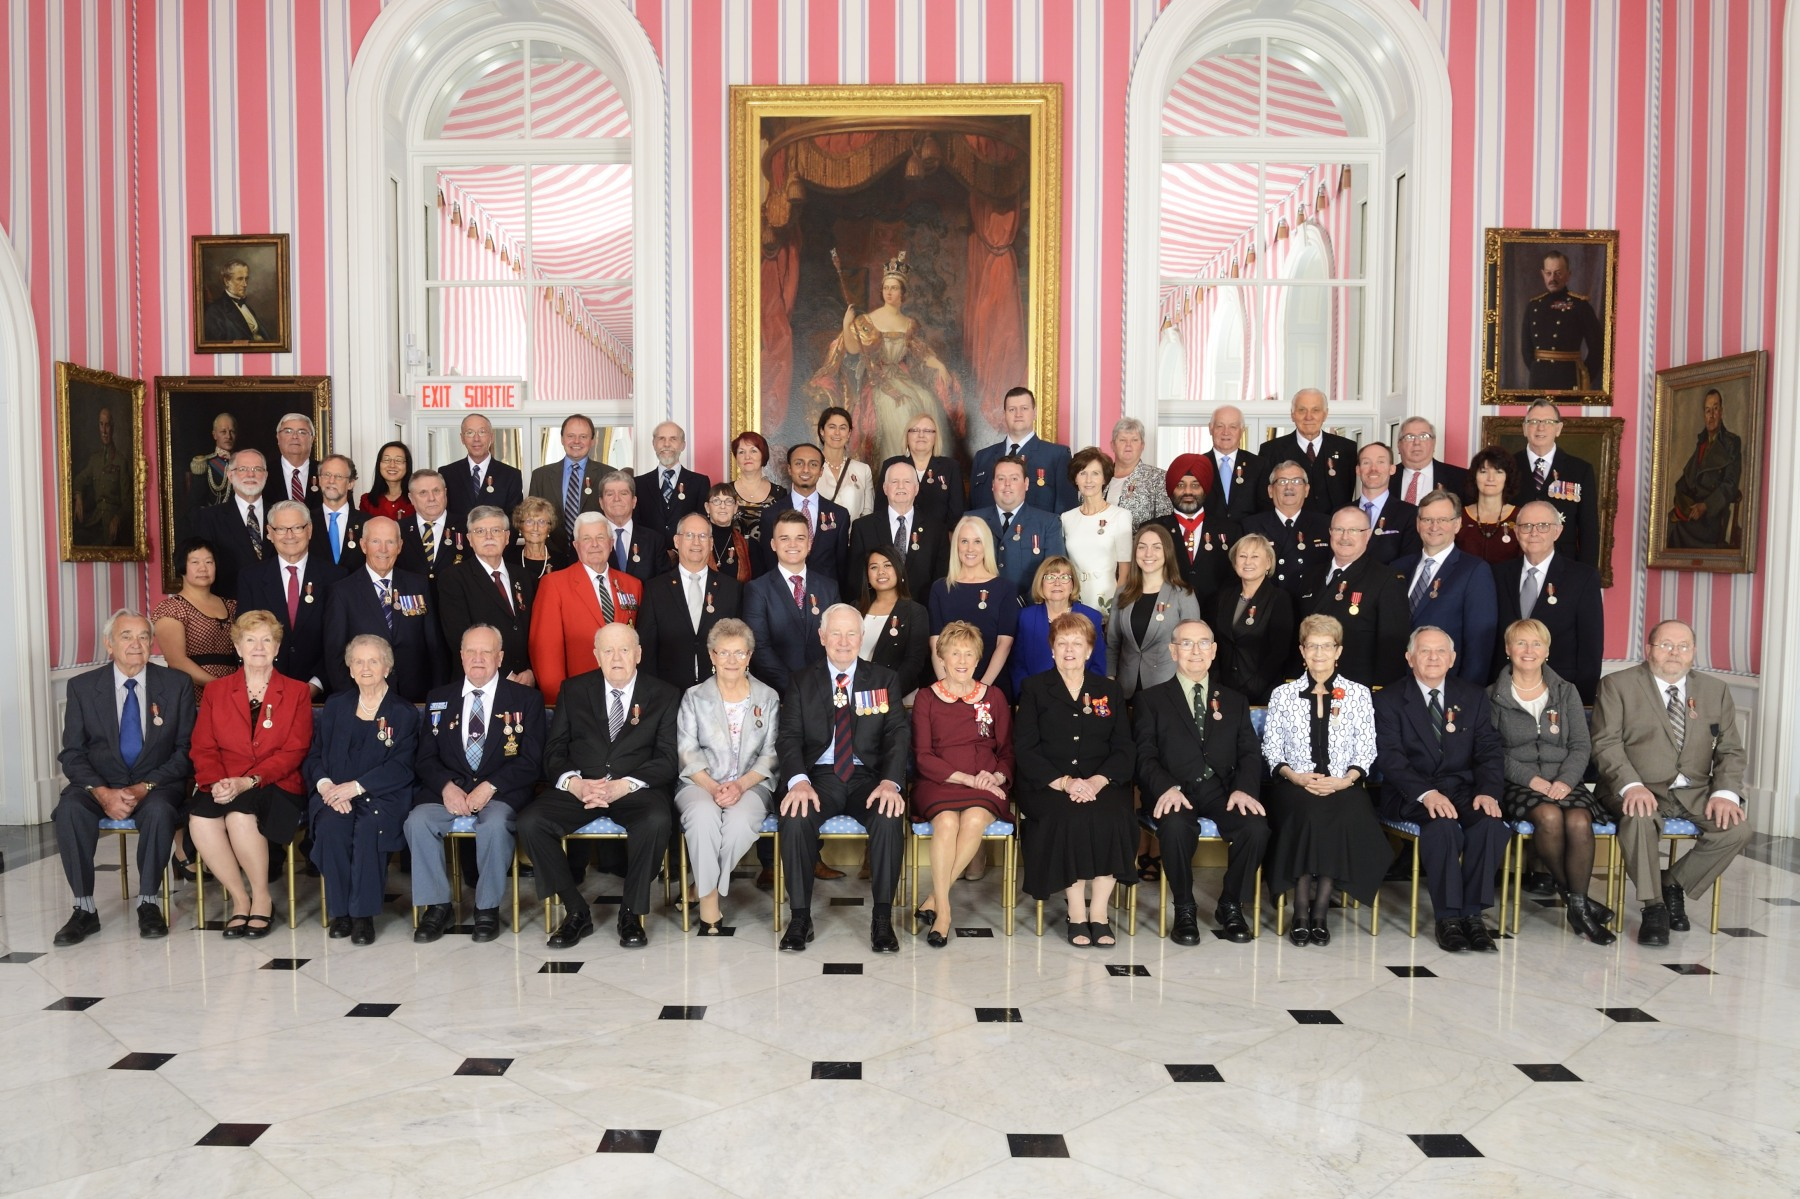 Their Excellencies are pictured with the first 55 recipients of the new Sovereign's Medal for Volunteers.